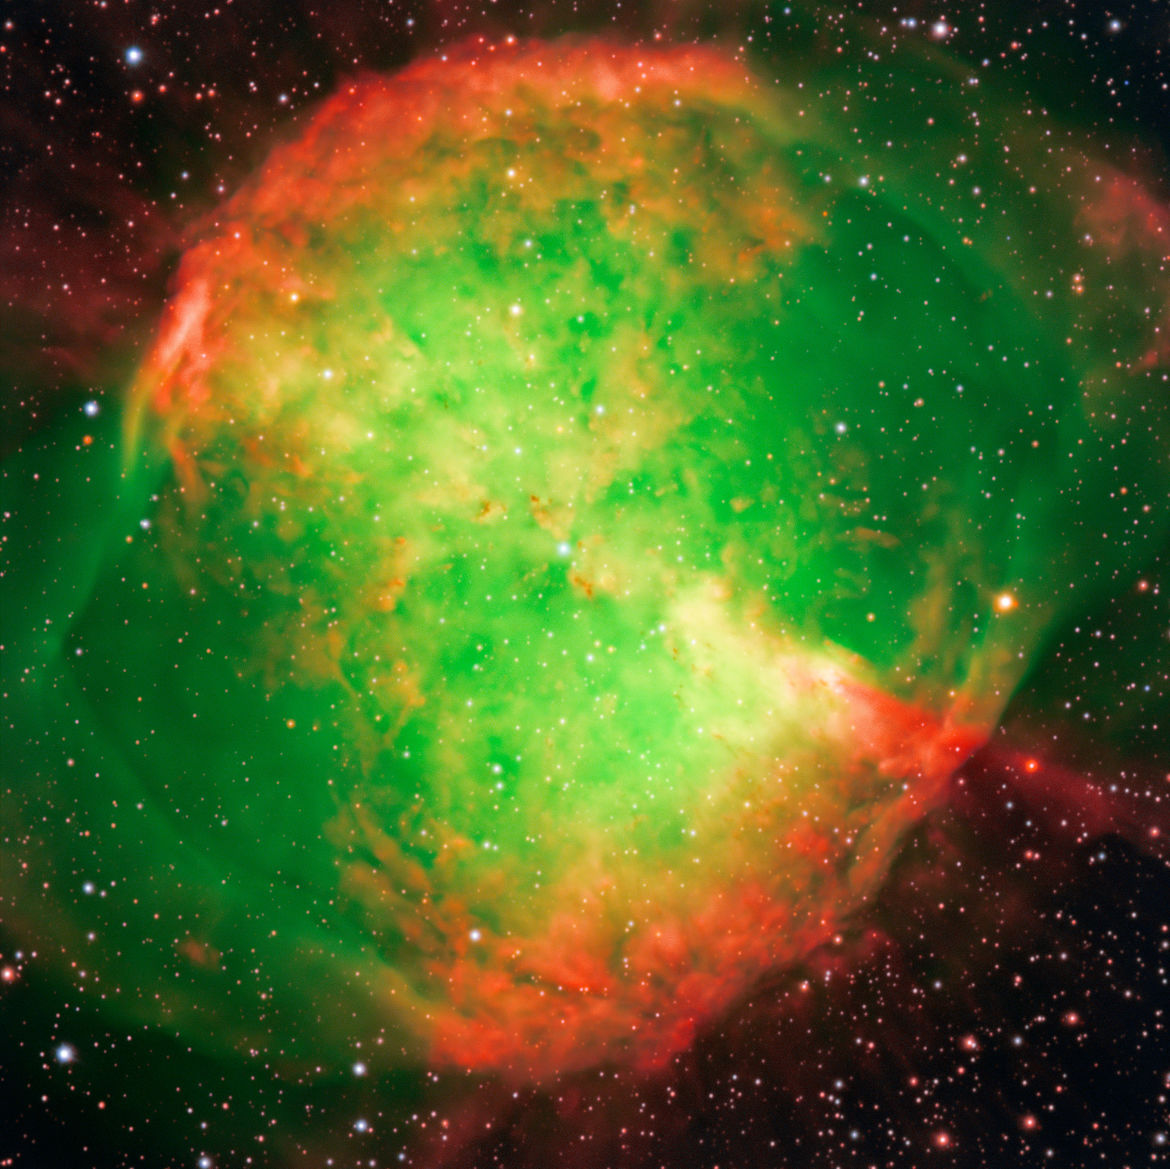 The spectacular Dumbbell Nebula, a dying star that has cast off its outer layers which now glow. Credit:ESO/I. Appenzeller, W. Seifert, O. Stahl